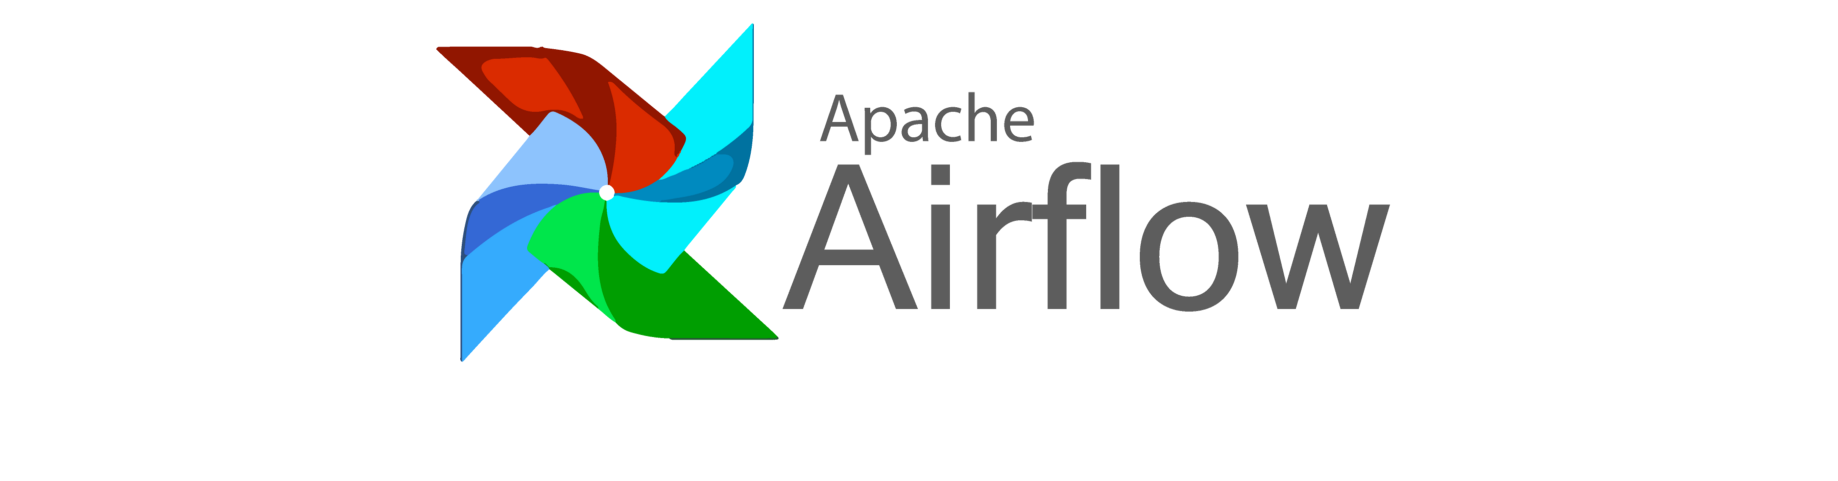 Quick guide: How to run Apache Airflow cluster in docker-compose